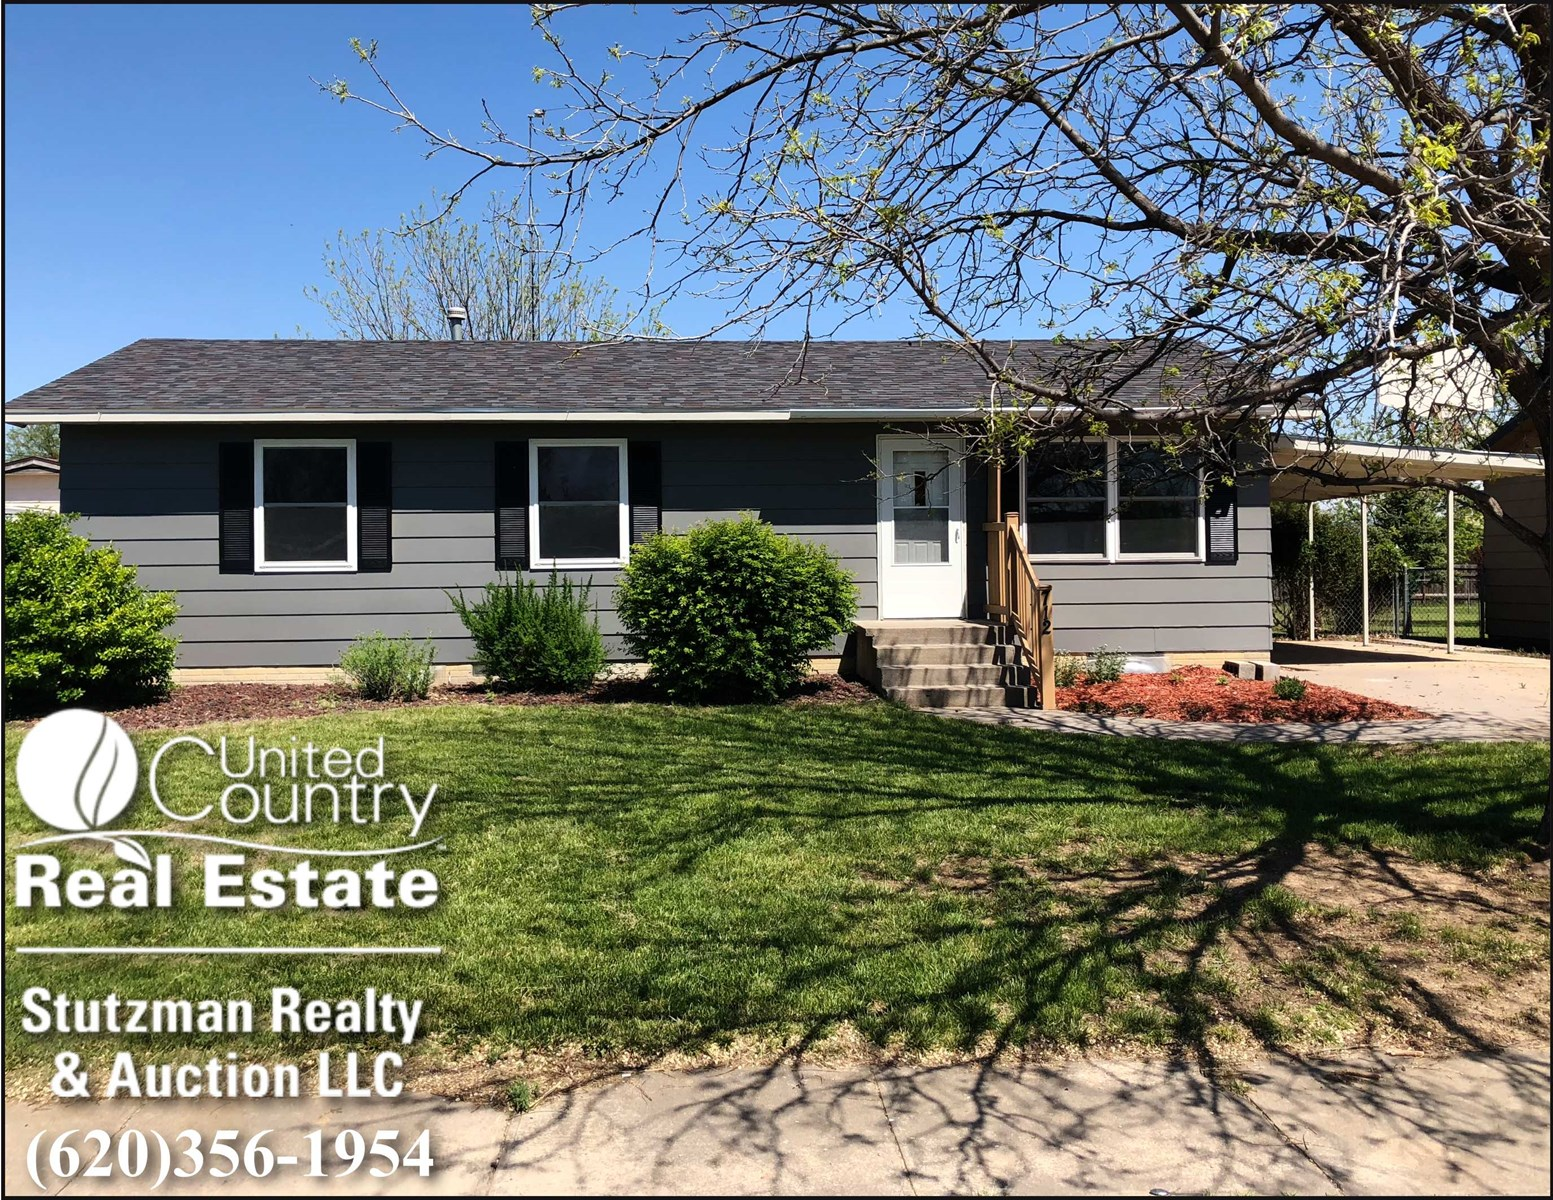 FOUR BEDROOM HOME FOR SALE WITH FULL BASEMENT IN ULYSSES, KS